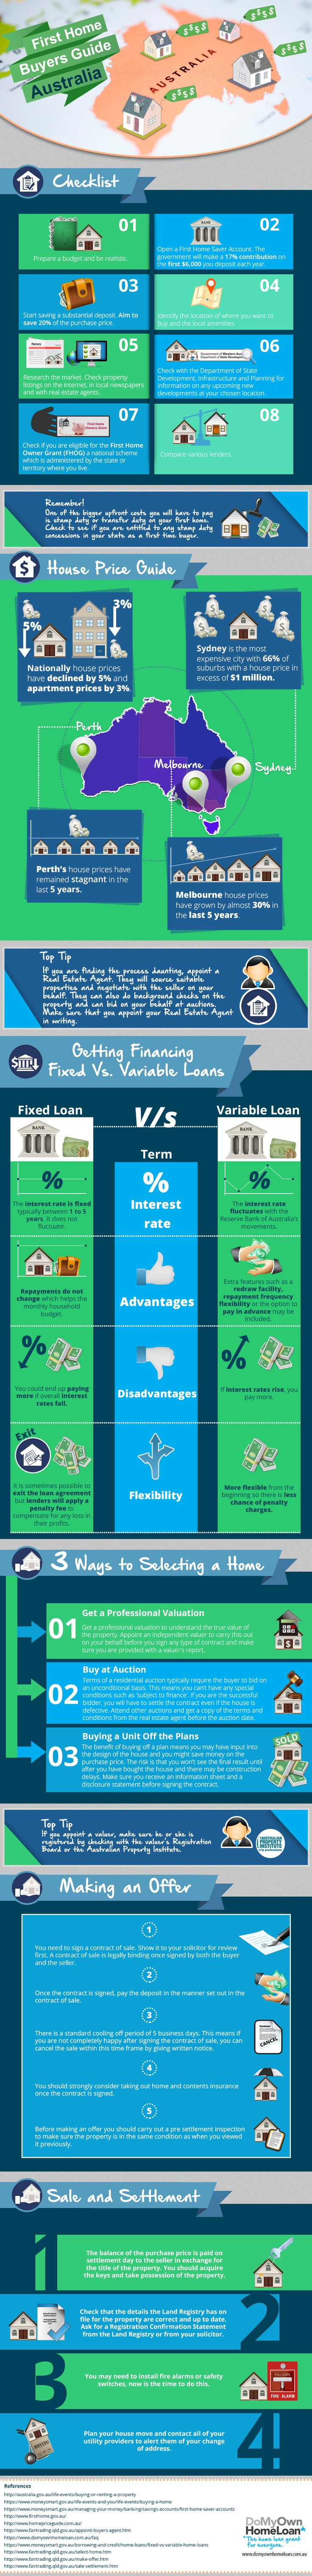 """Buying your first home can be a daunting task, but we've made it easy with our quick facts in the infographic about """"First Home Buyers Guide in Australia"""". We outline a checklist of what you need in place, top tips, a house price guide by city, a guide to the most popular types of loans and the process of home selection, sale and settlement."""